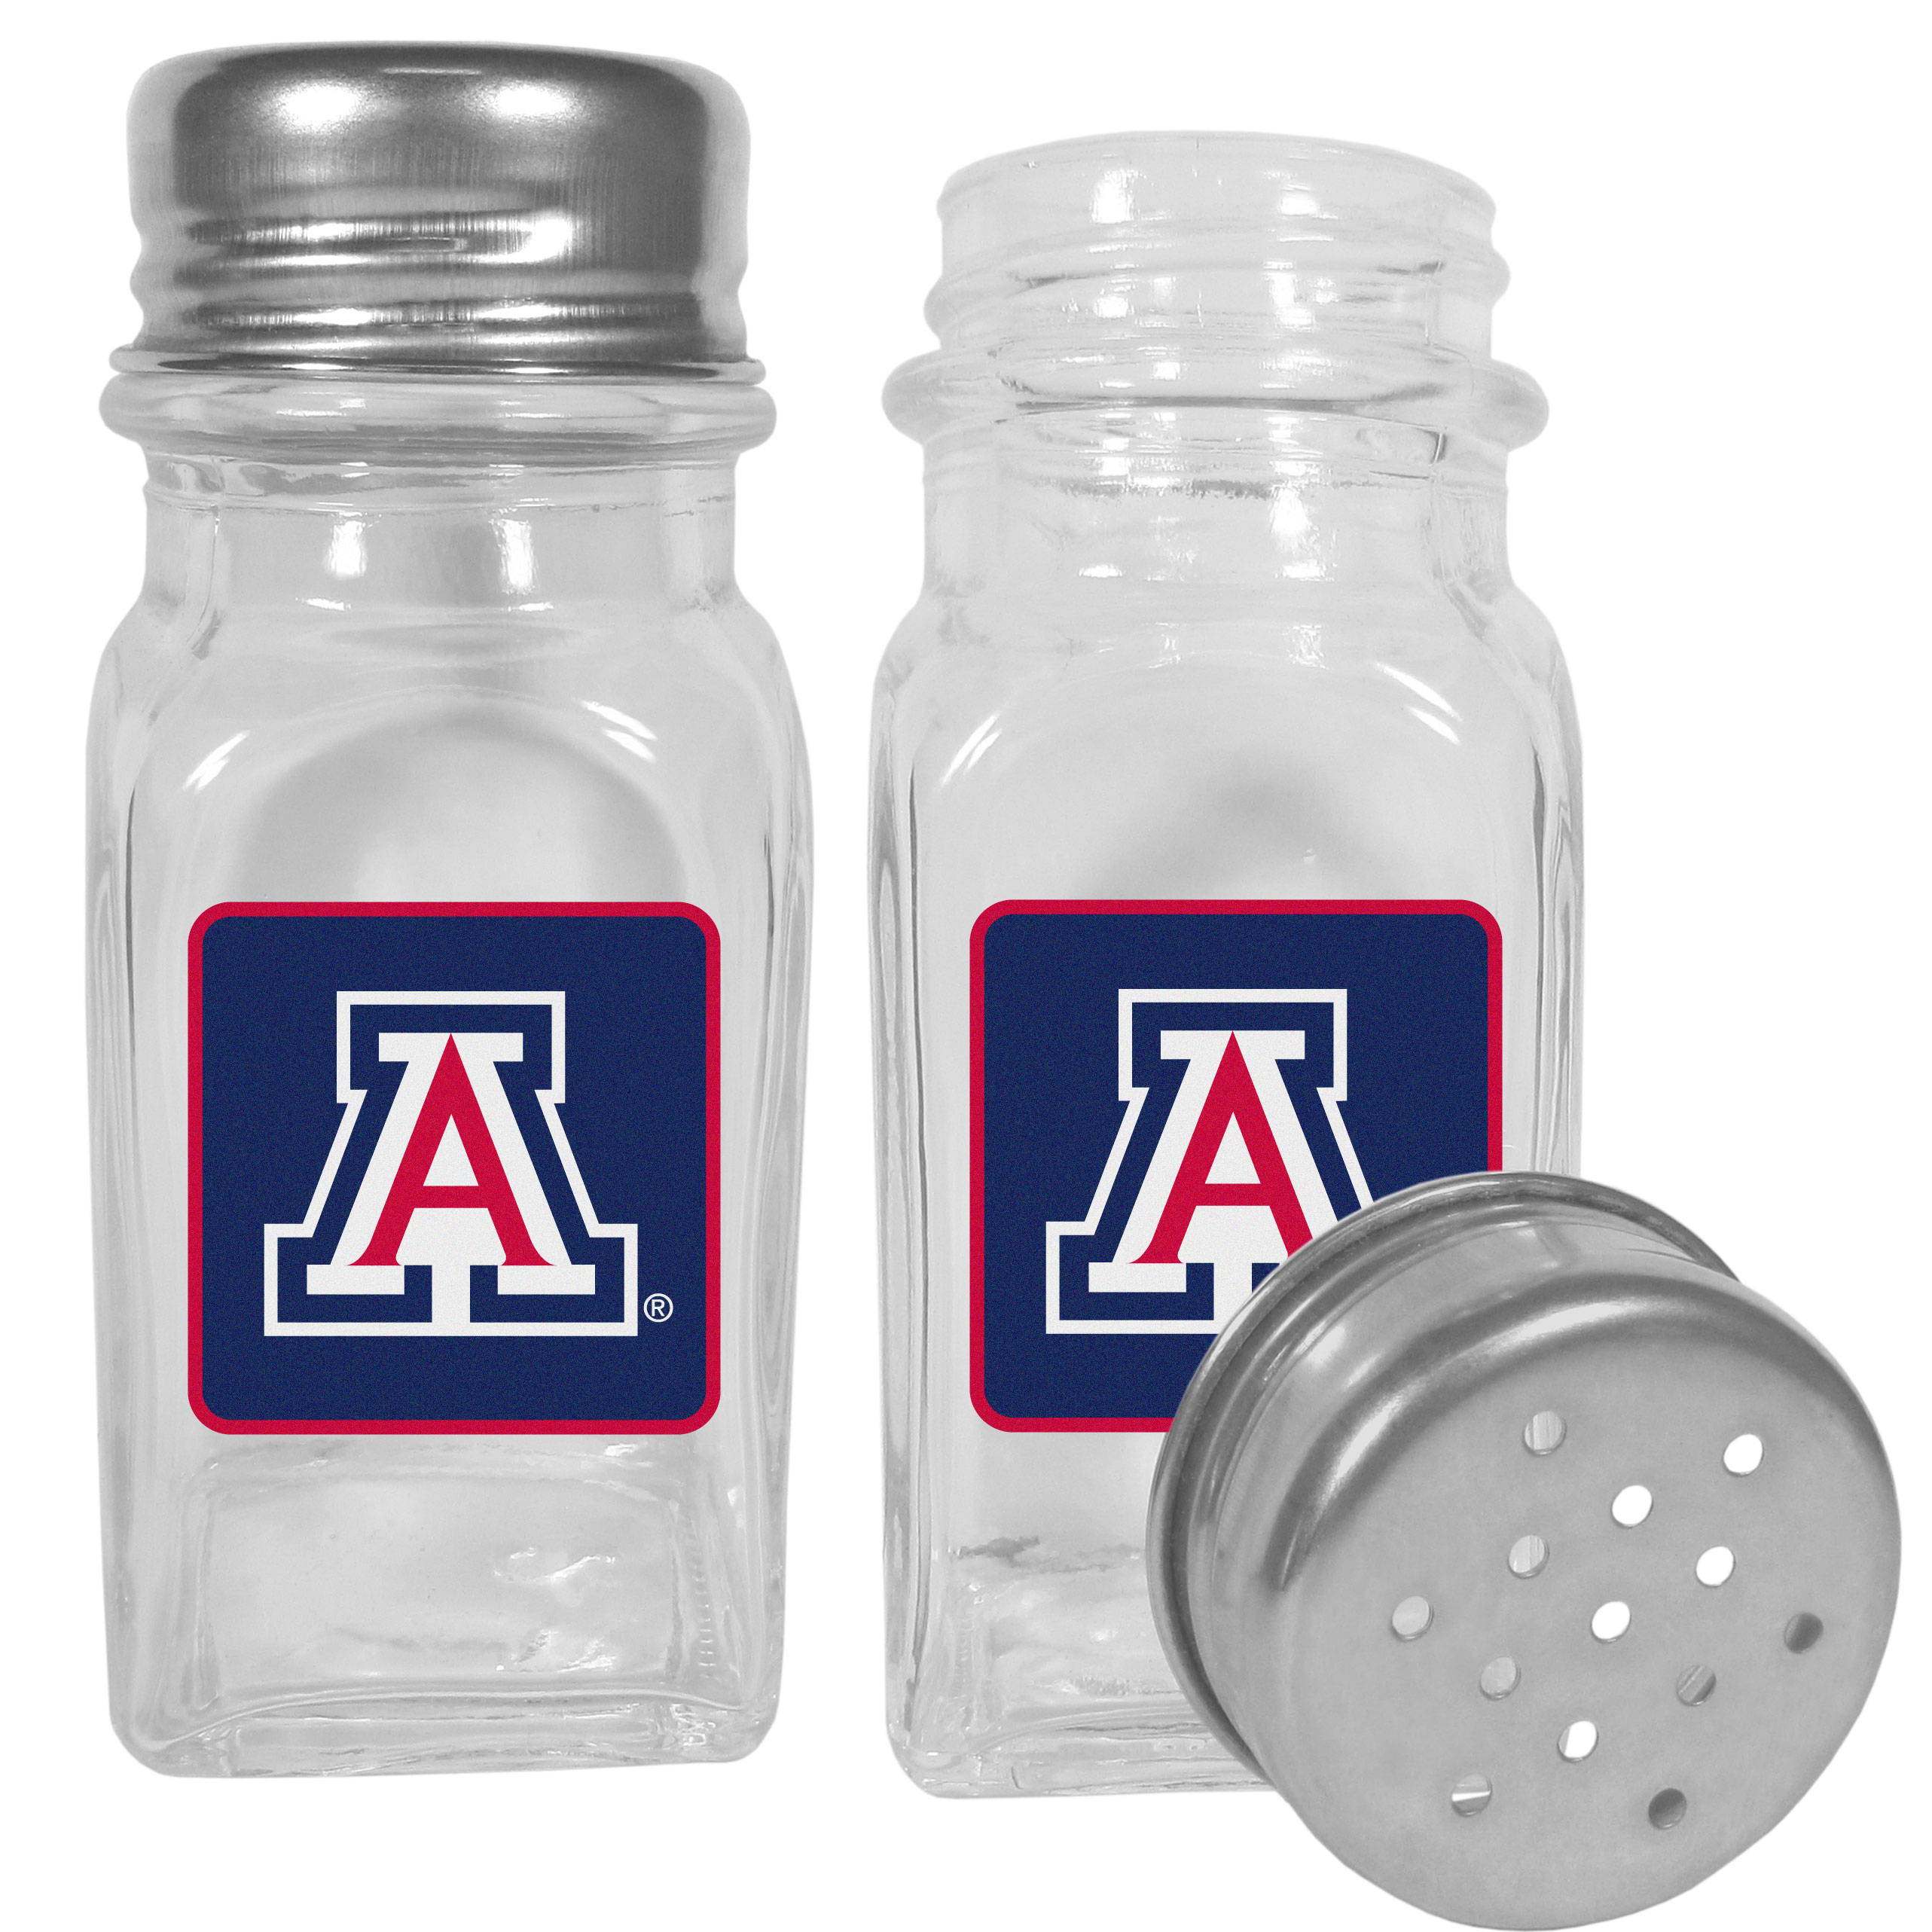 Arizona Wildcats Graphics Salt and Pepper Shaker - No tailgate party is complete without your Arizona Wildcats salt & pepper shakers featuring bright team logos. The diner replica salt and pepper shakers are glass with screw top lids. These team shakers are a great grill accessory whether you are barbecuing on the patio, picnicing or having a game day party.